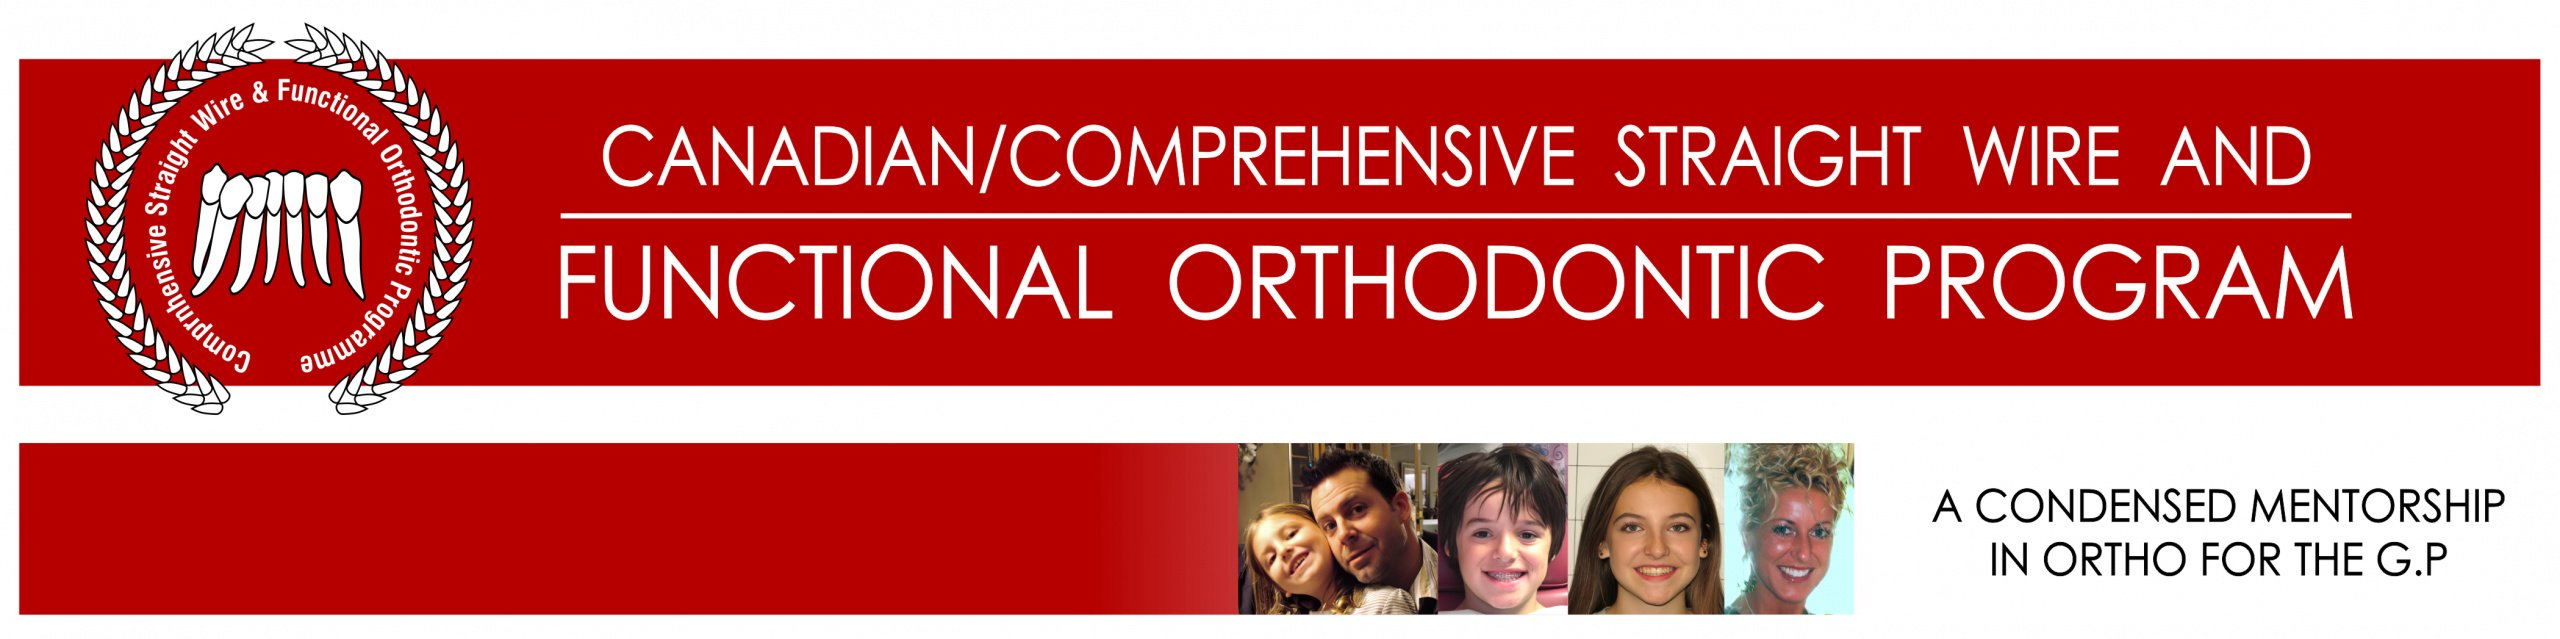 Comprehensive Straight Wire and Functional Orthodontic ProgramMy WordPress